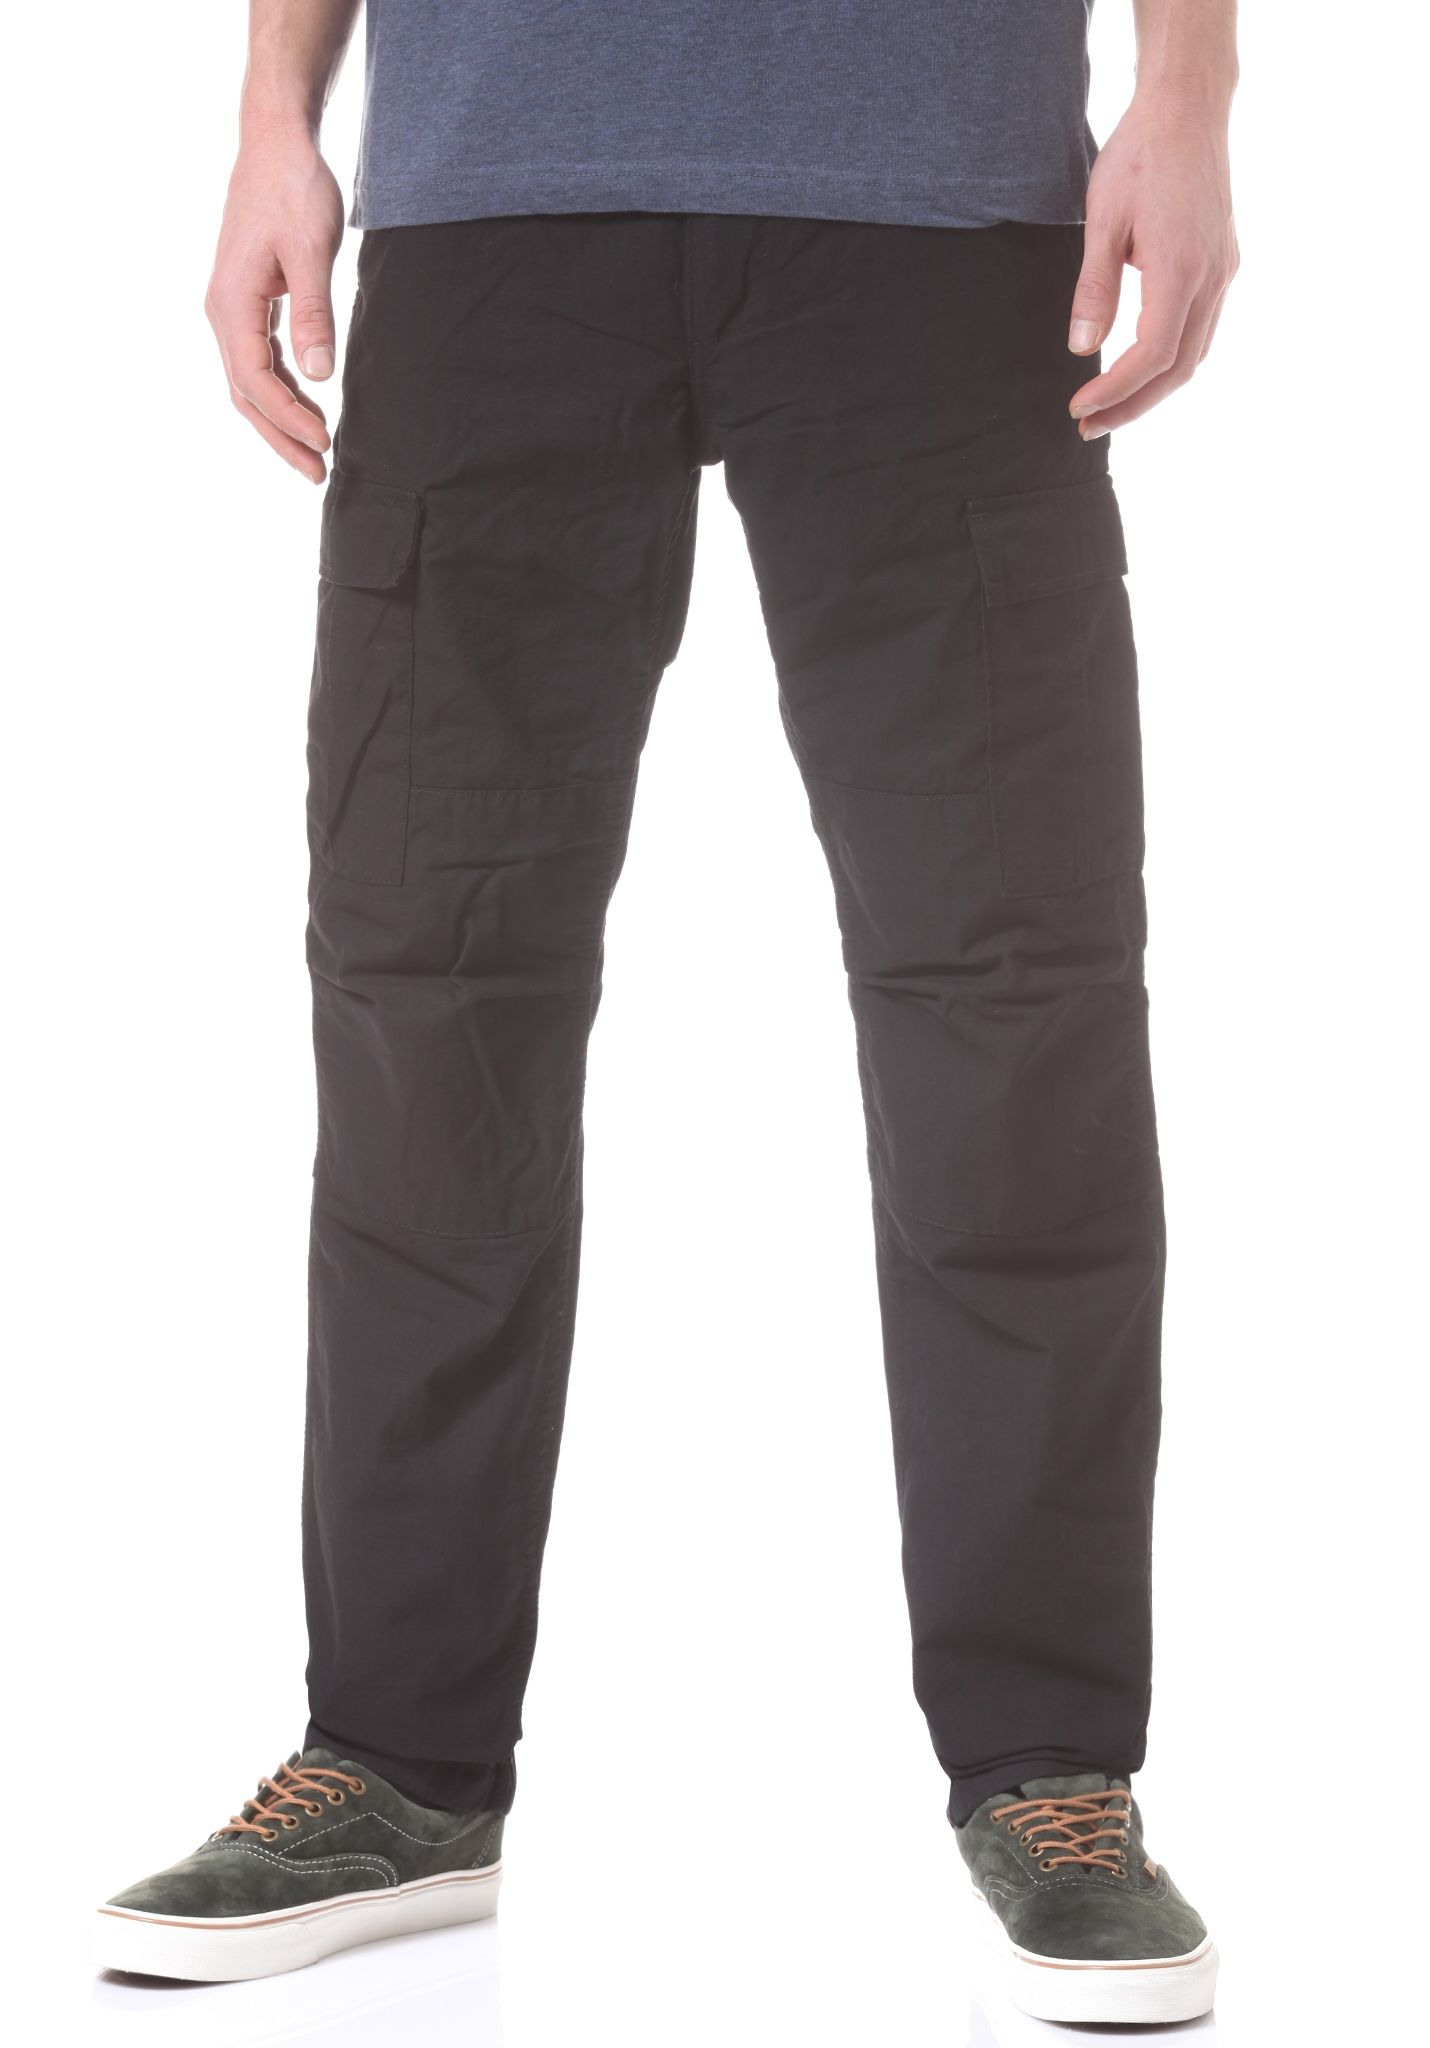 8f9d88acb9 carhartt WIP Aviation - Cargo Pants for Men - Black - Planet Sports